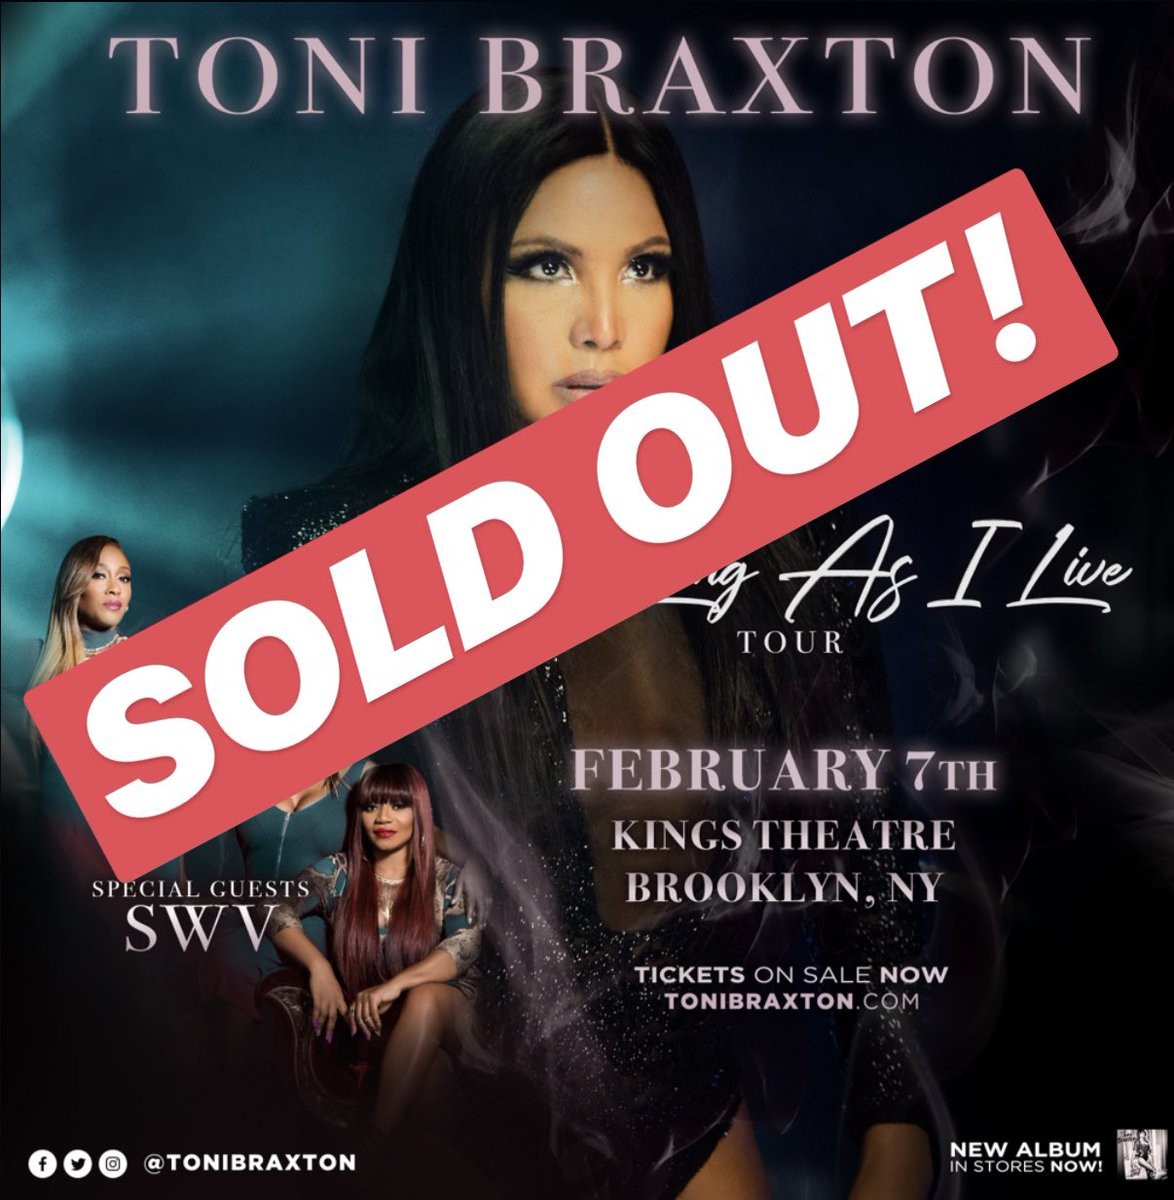 SOLD OUT! @KingsBklyn #AsLongAsILiveTour https://t.co/l14esbmNrb